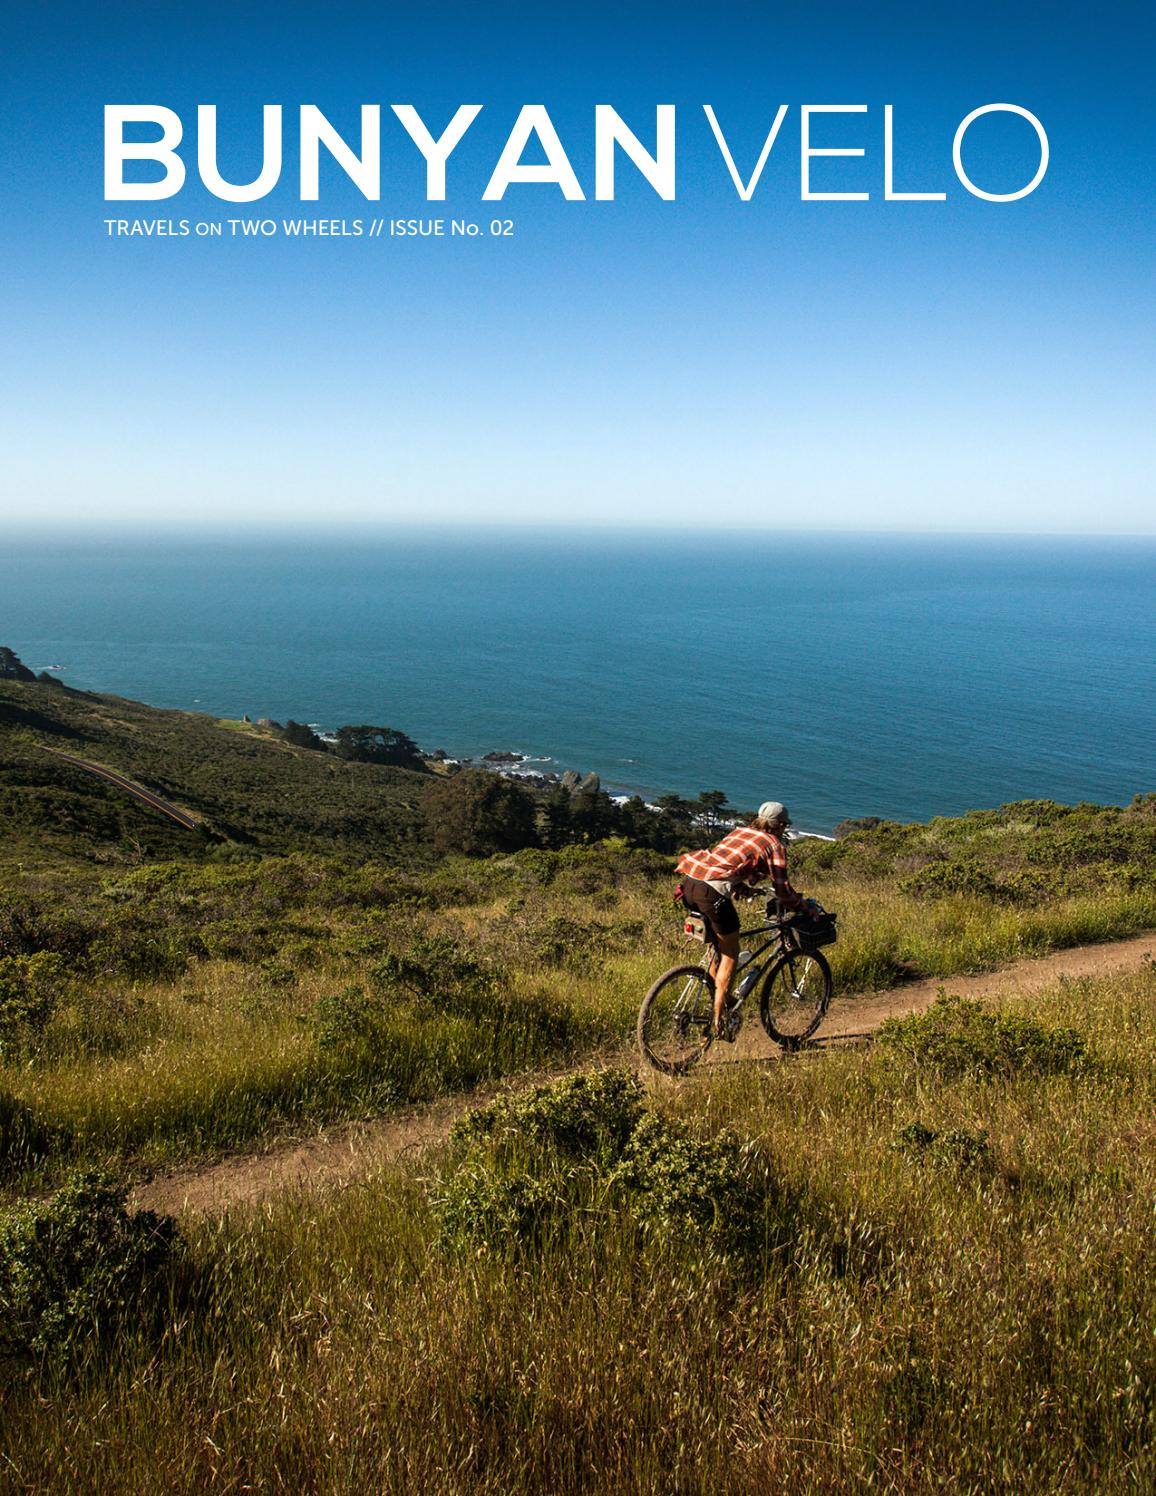 ae0157ef Bunyan Velo: Travels on Two Wheels, Issue No. 02 by Lucas Winzenburg - issuu